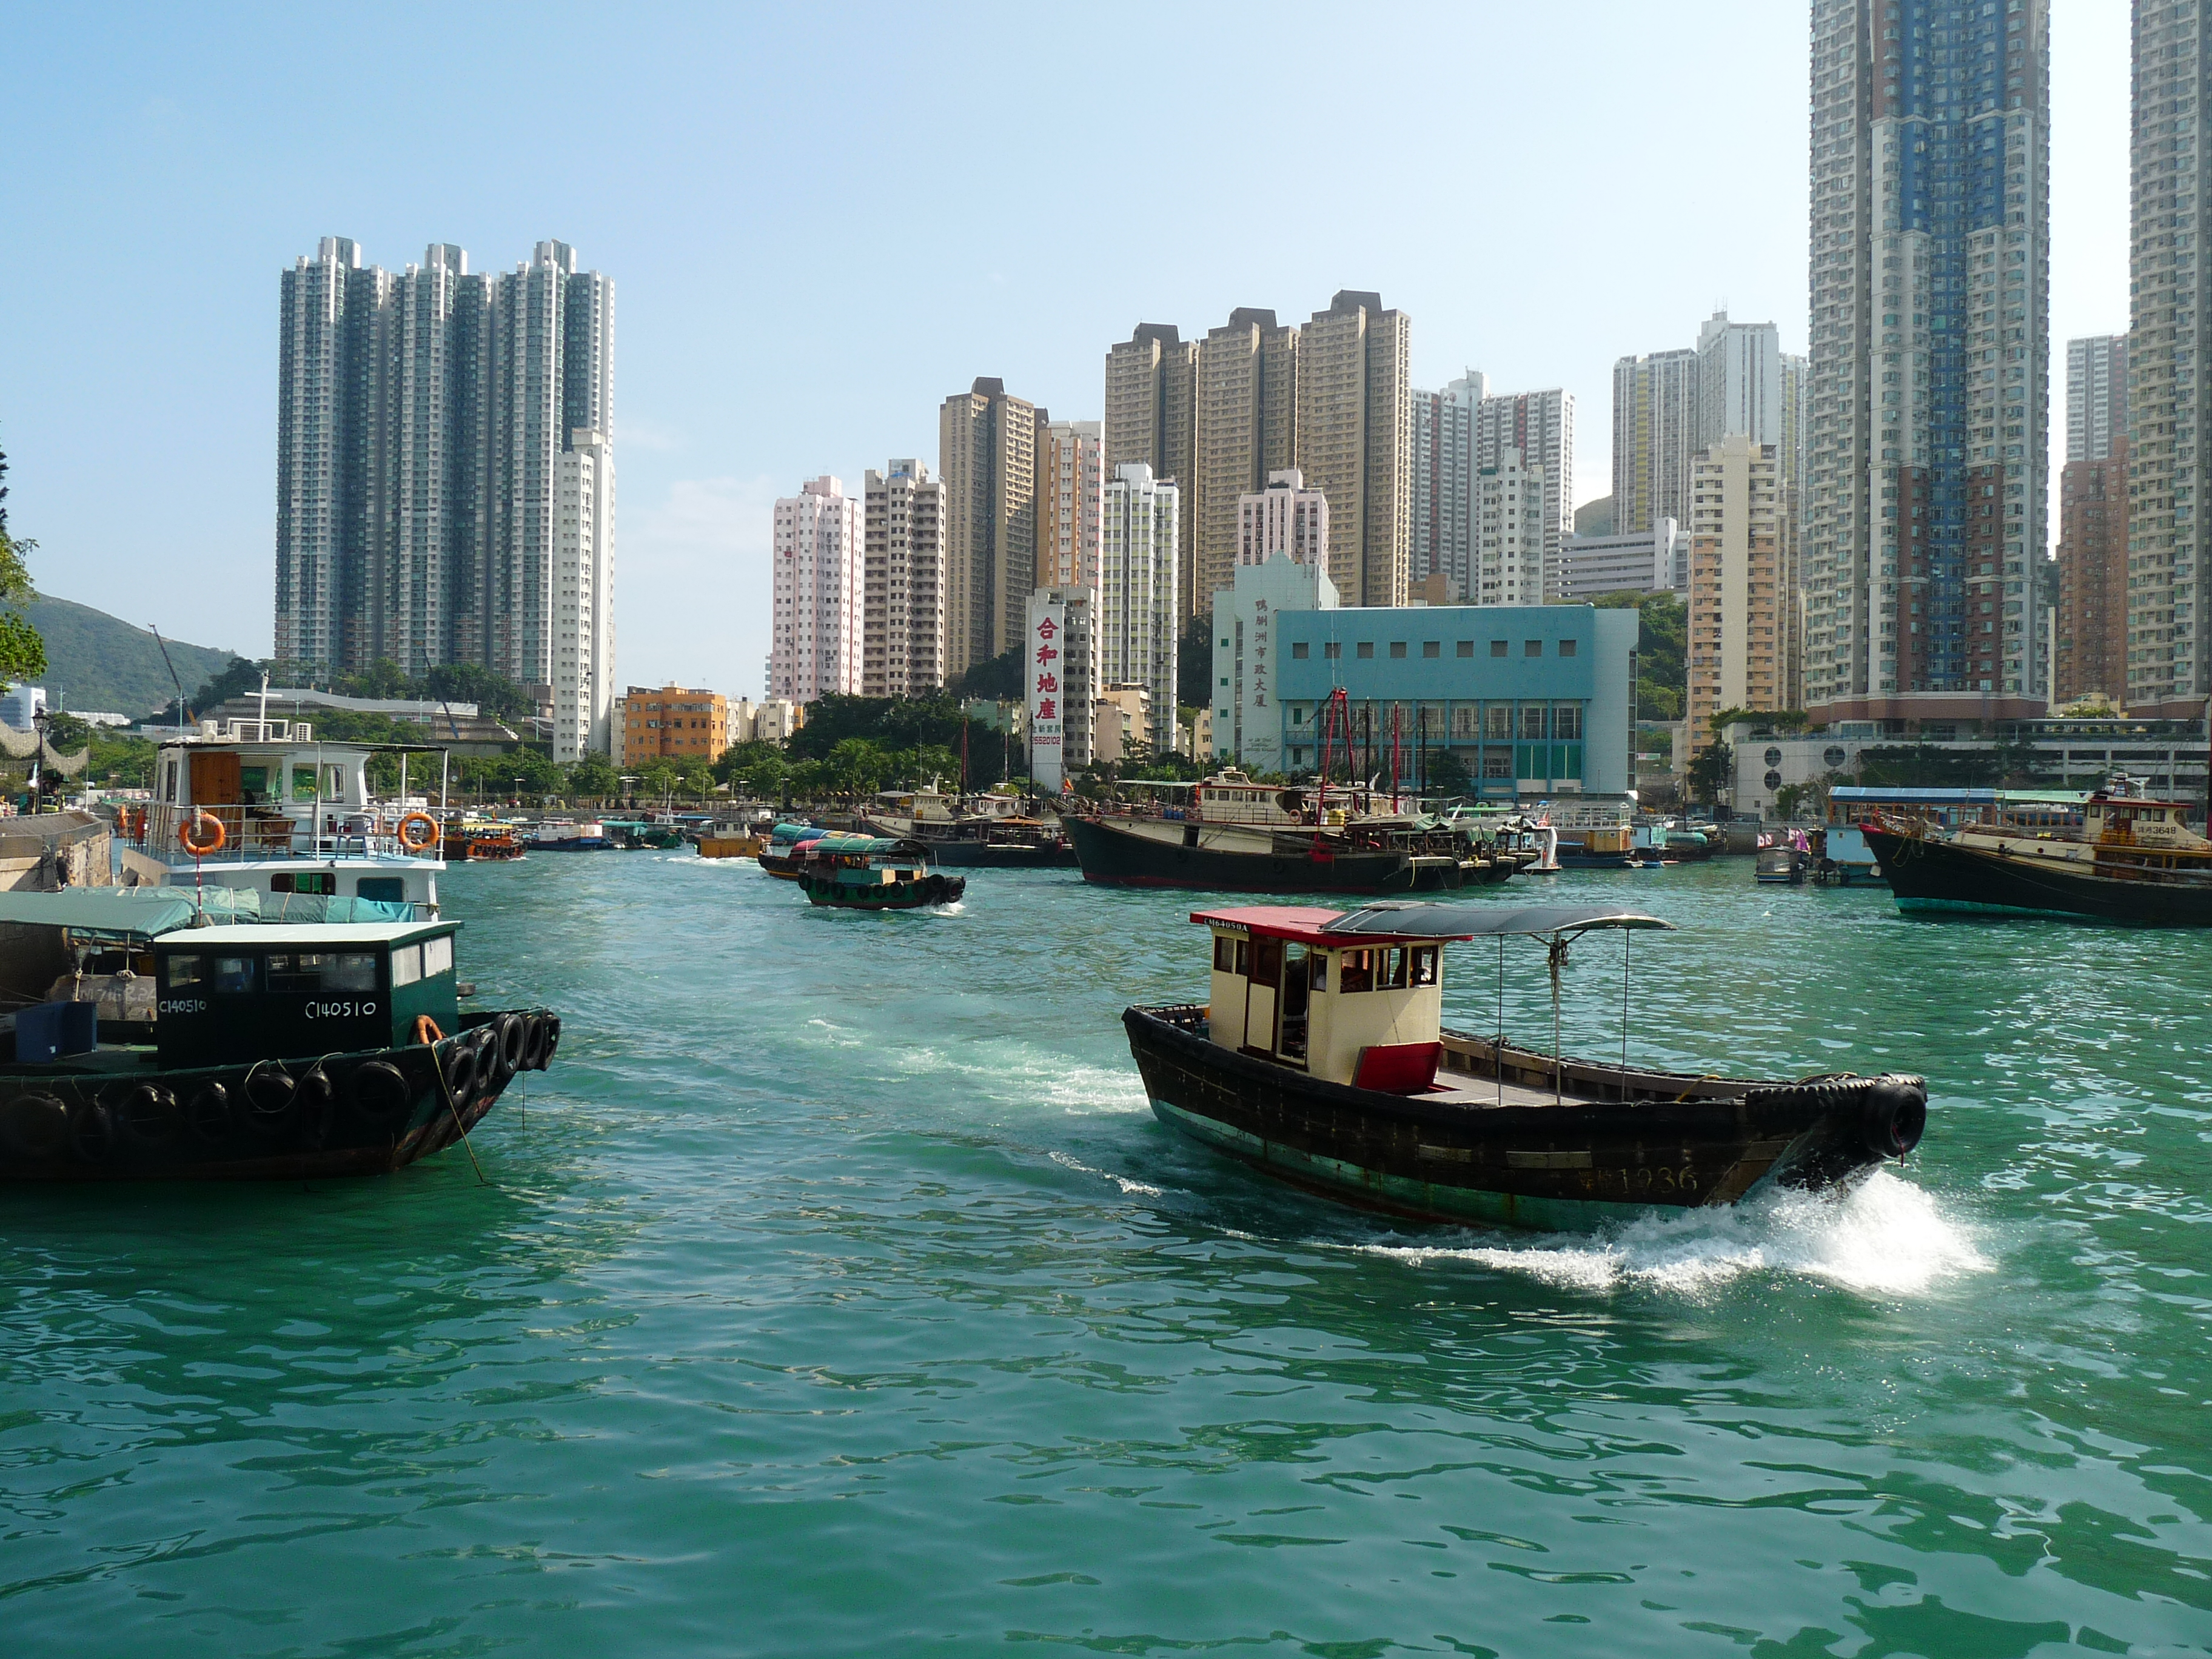 On my way to Lamma Island, surrounded by boats :)